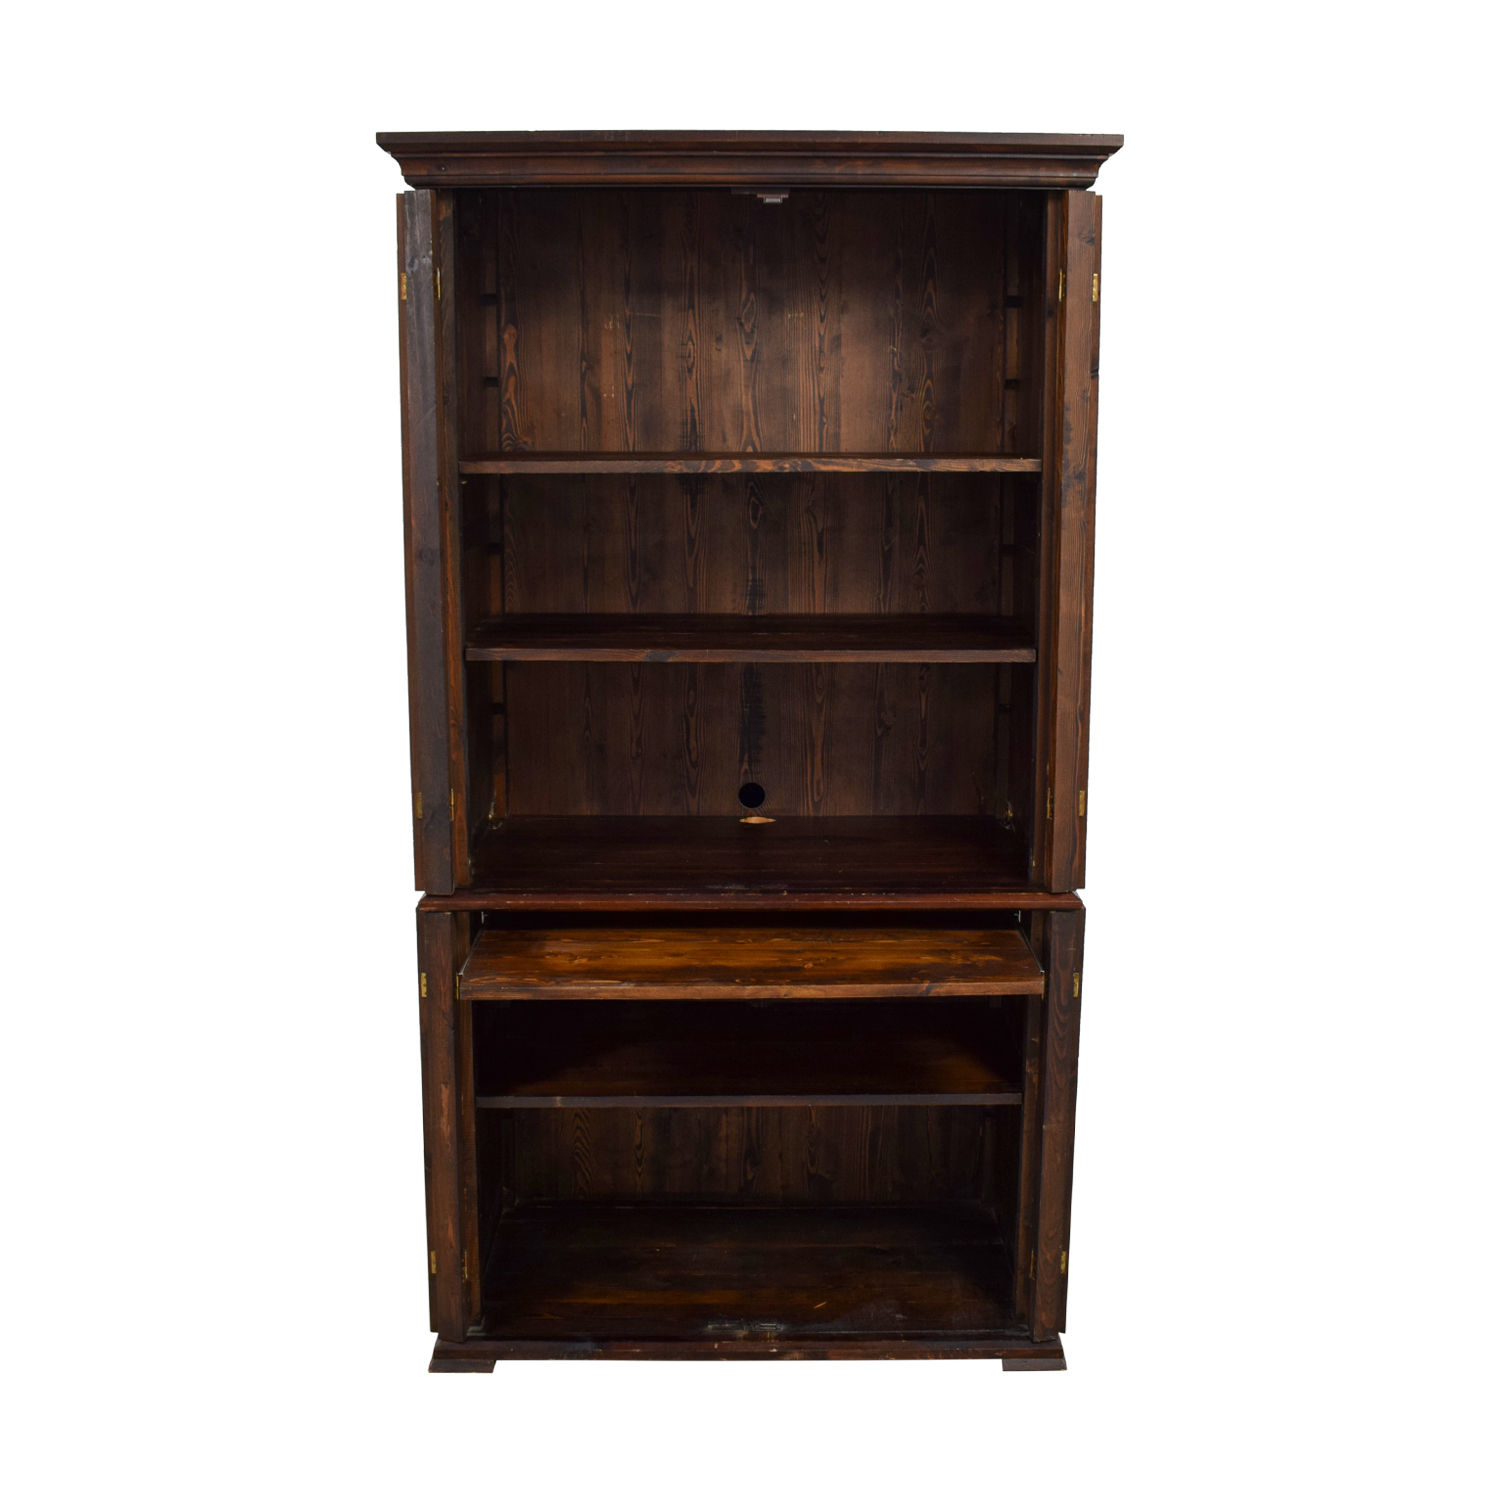 Wood Armoire with Interior Shelving Bookcases & Shelving